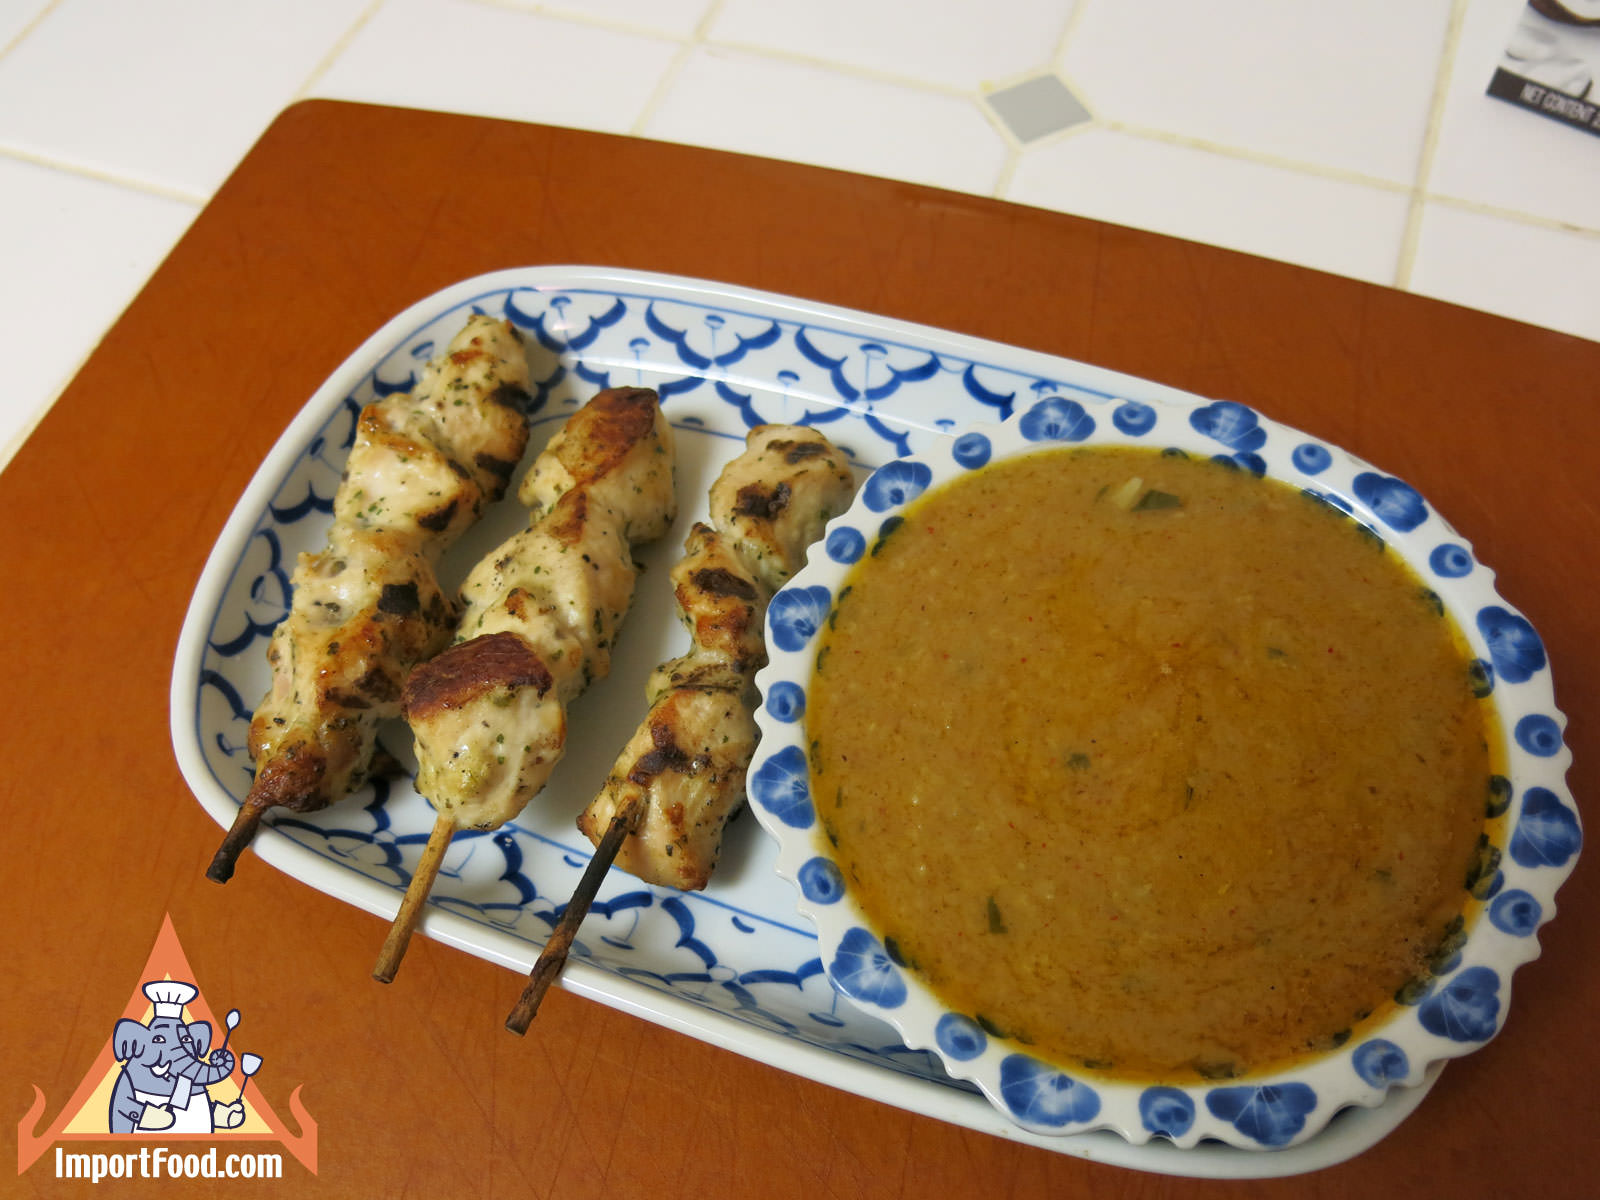 Lovely satay sauce with chicken skewers